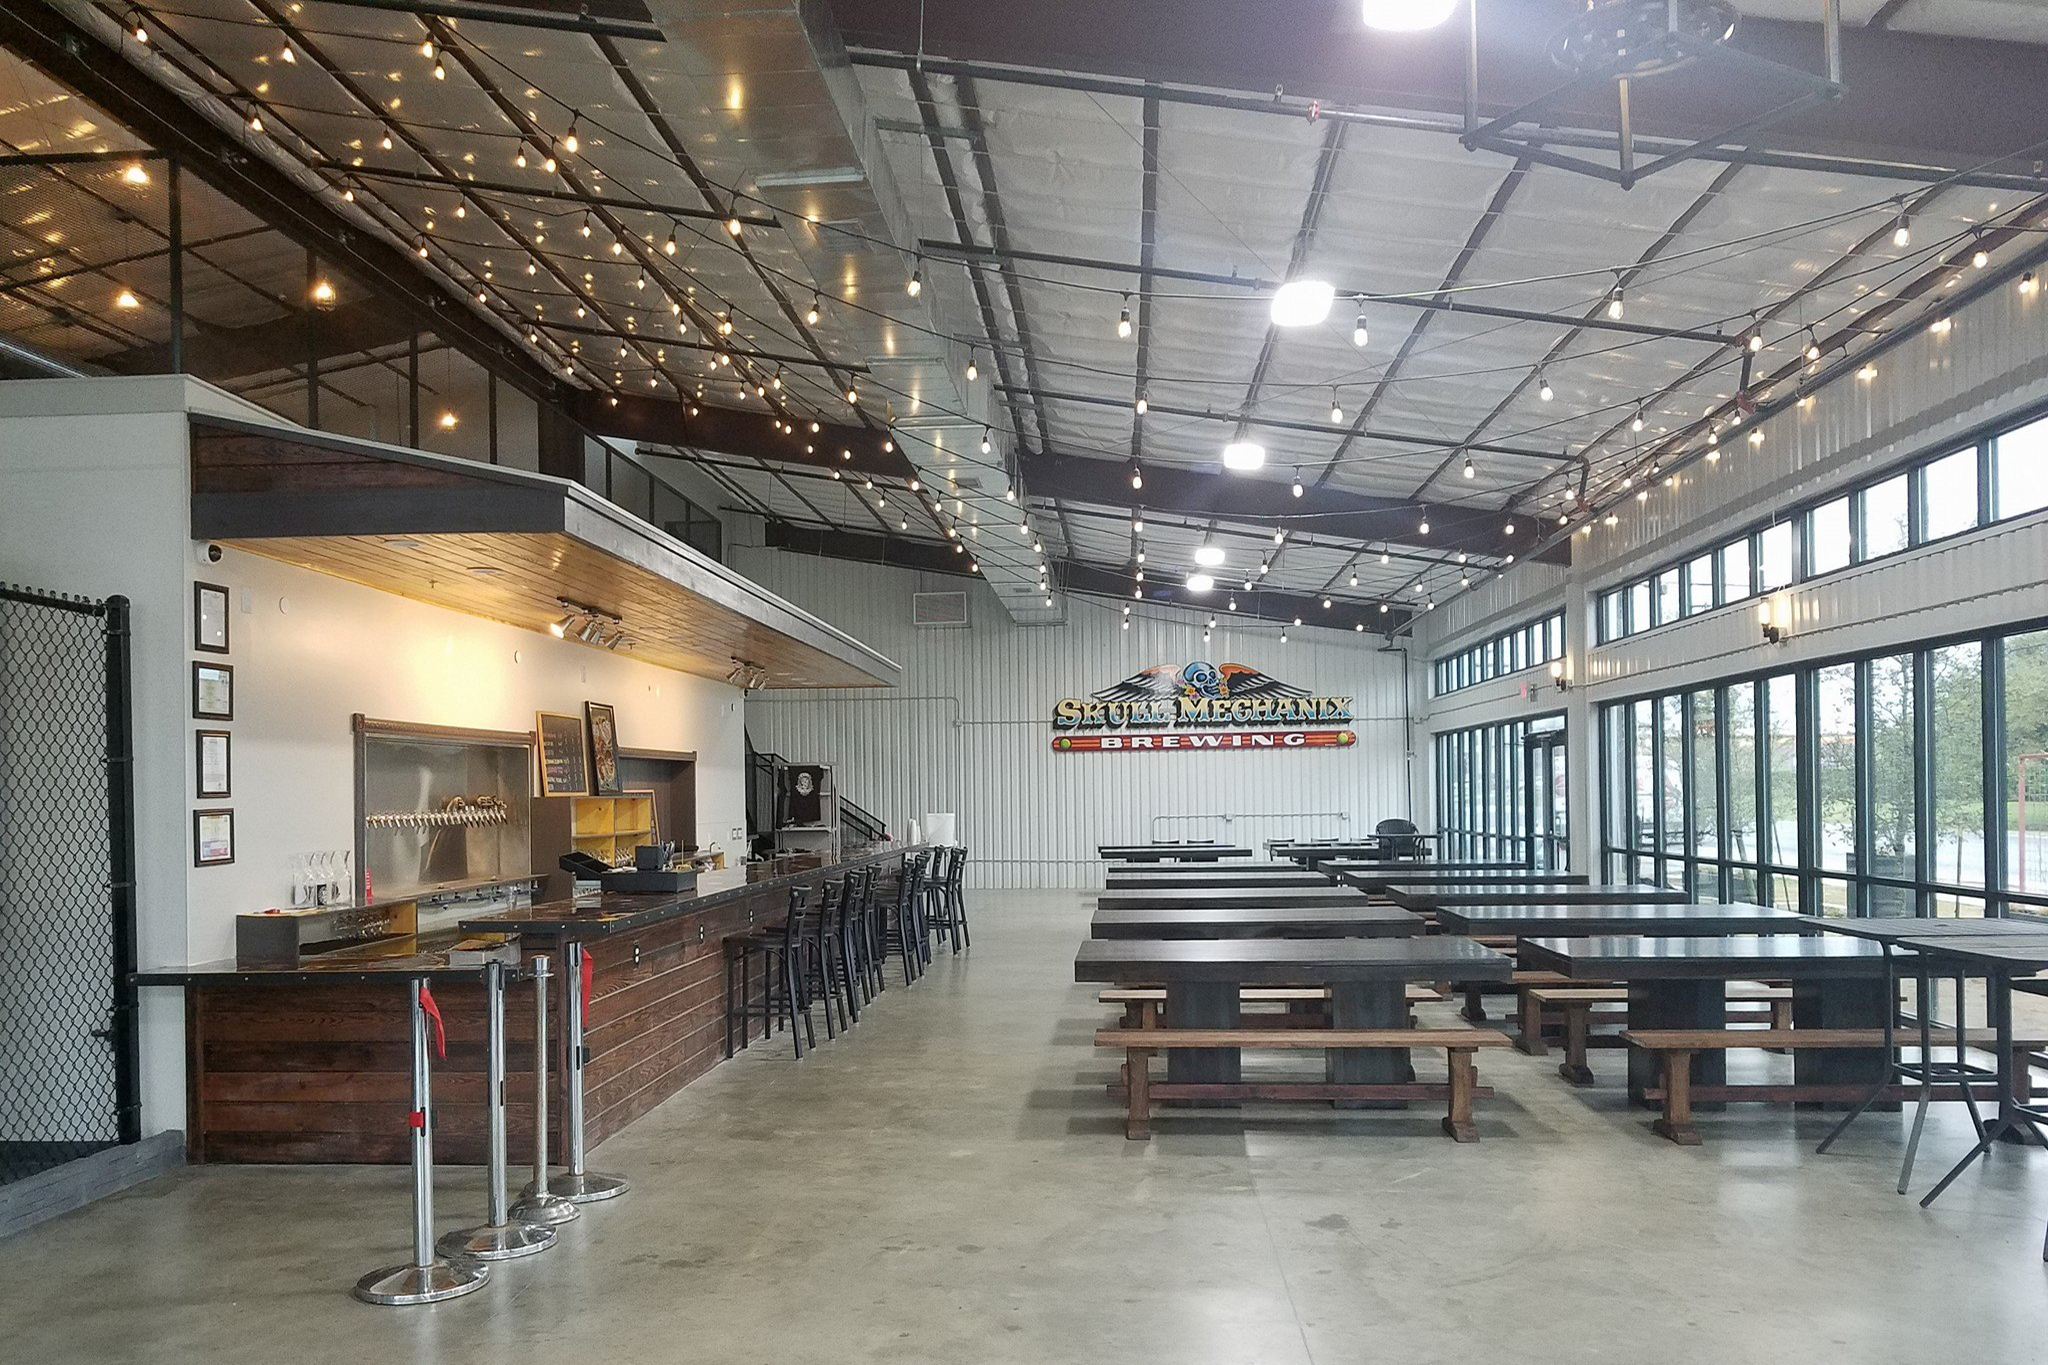 Two new breweries on our radar